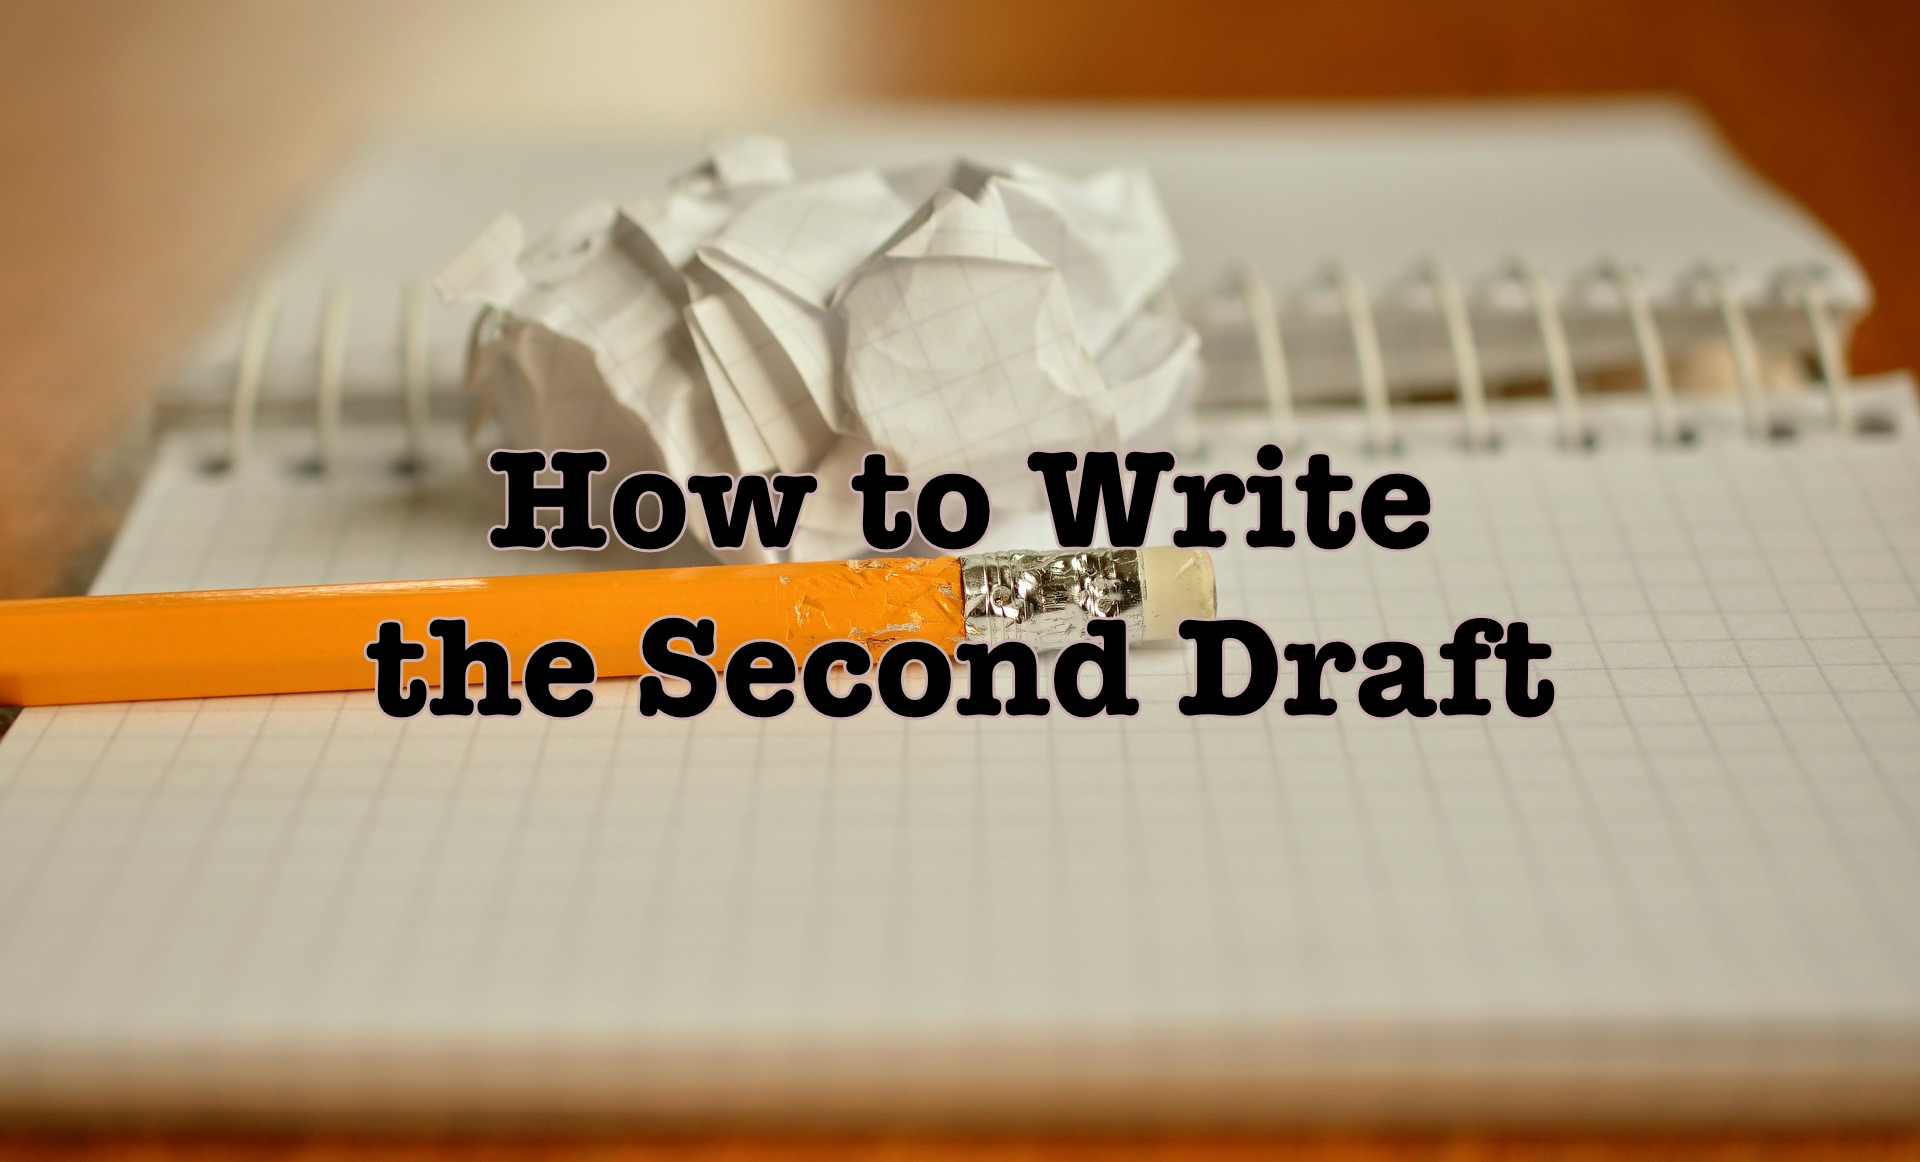 How to Write the Second Draft